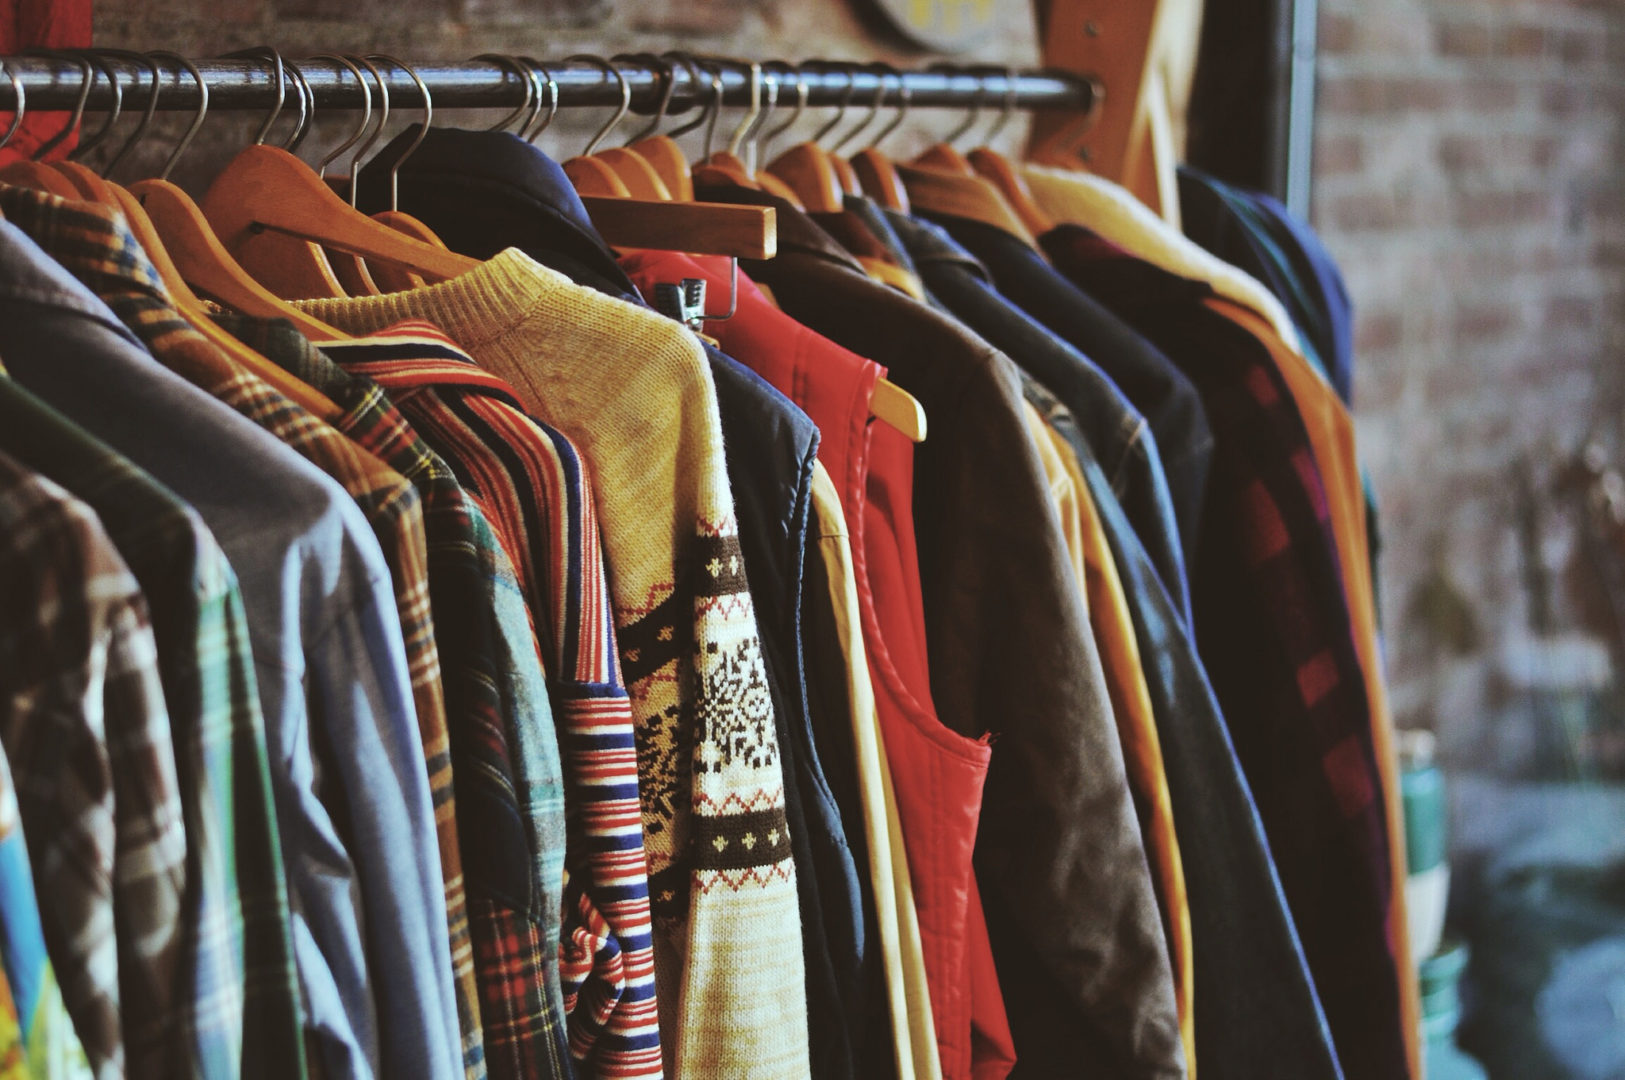 Consider owning fewer, but more consciously made clothing items